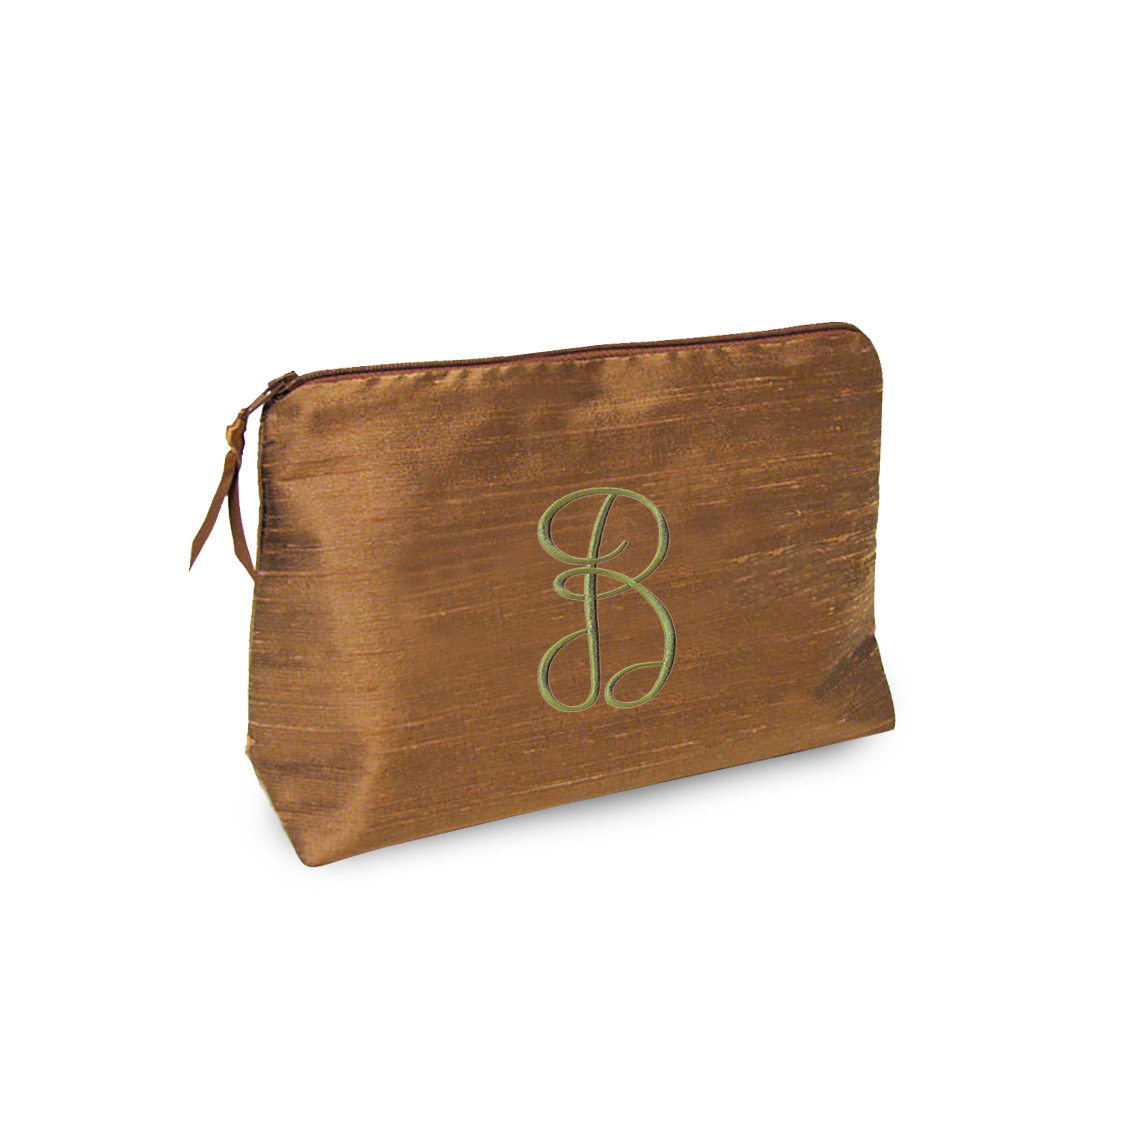 COSMETIC BAGS Archives - Luxury Wedding Invitations b40f9a5980762